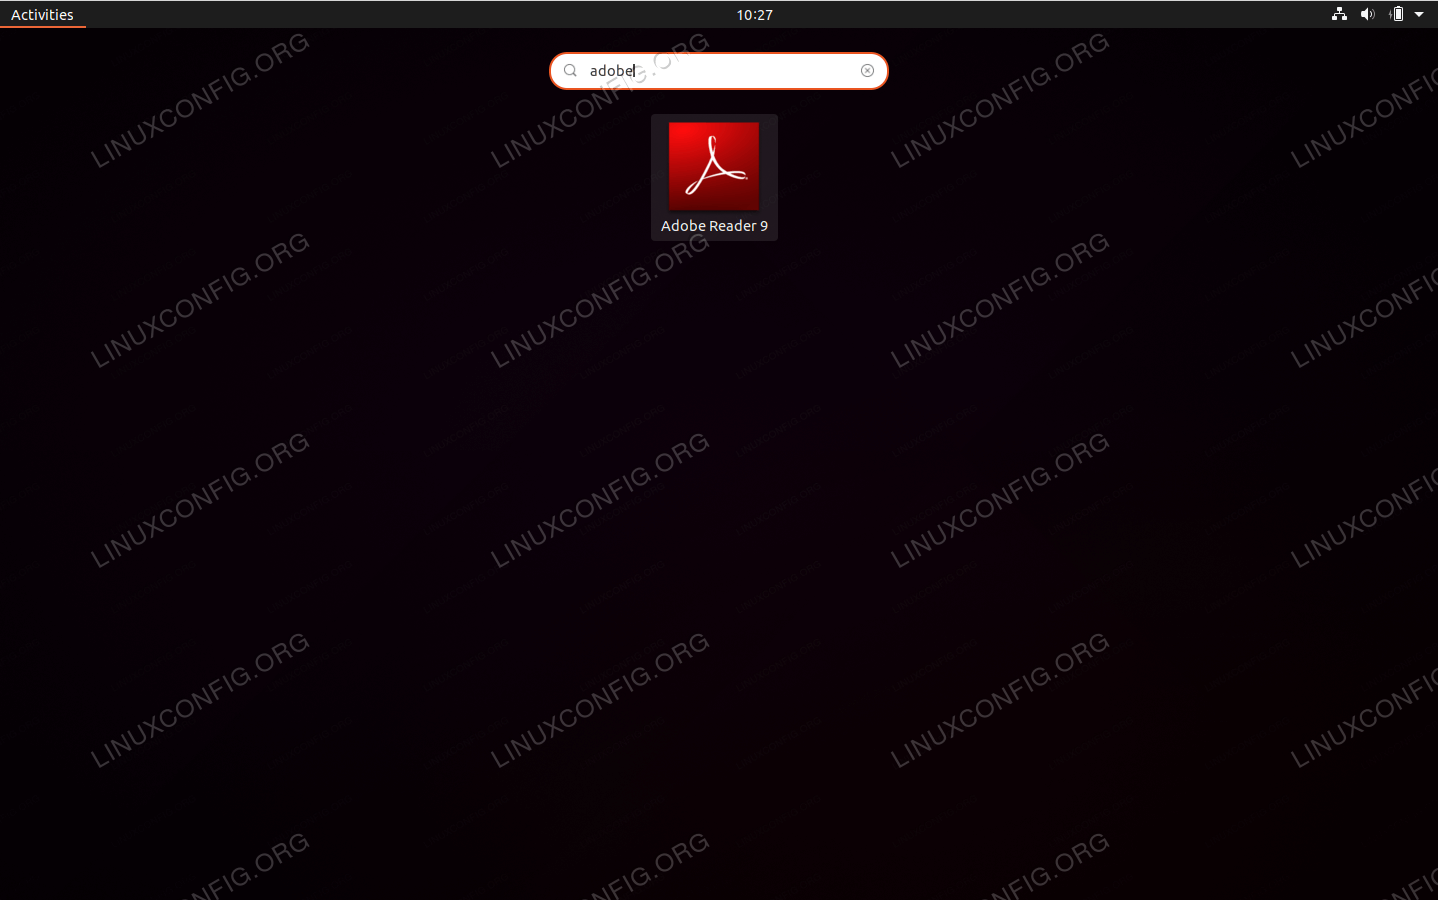 Launch Adobe Acrobat Reader on Ubuntu 20.04